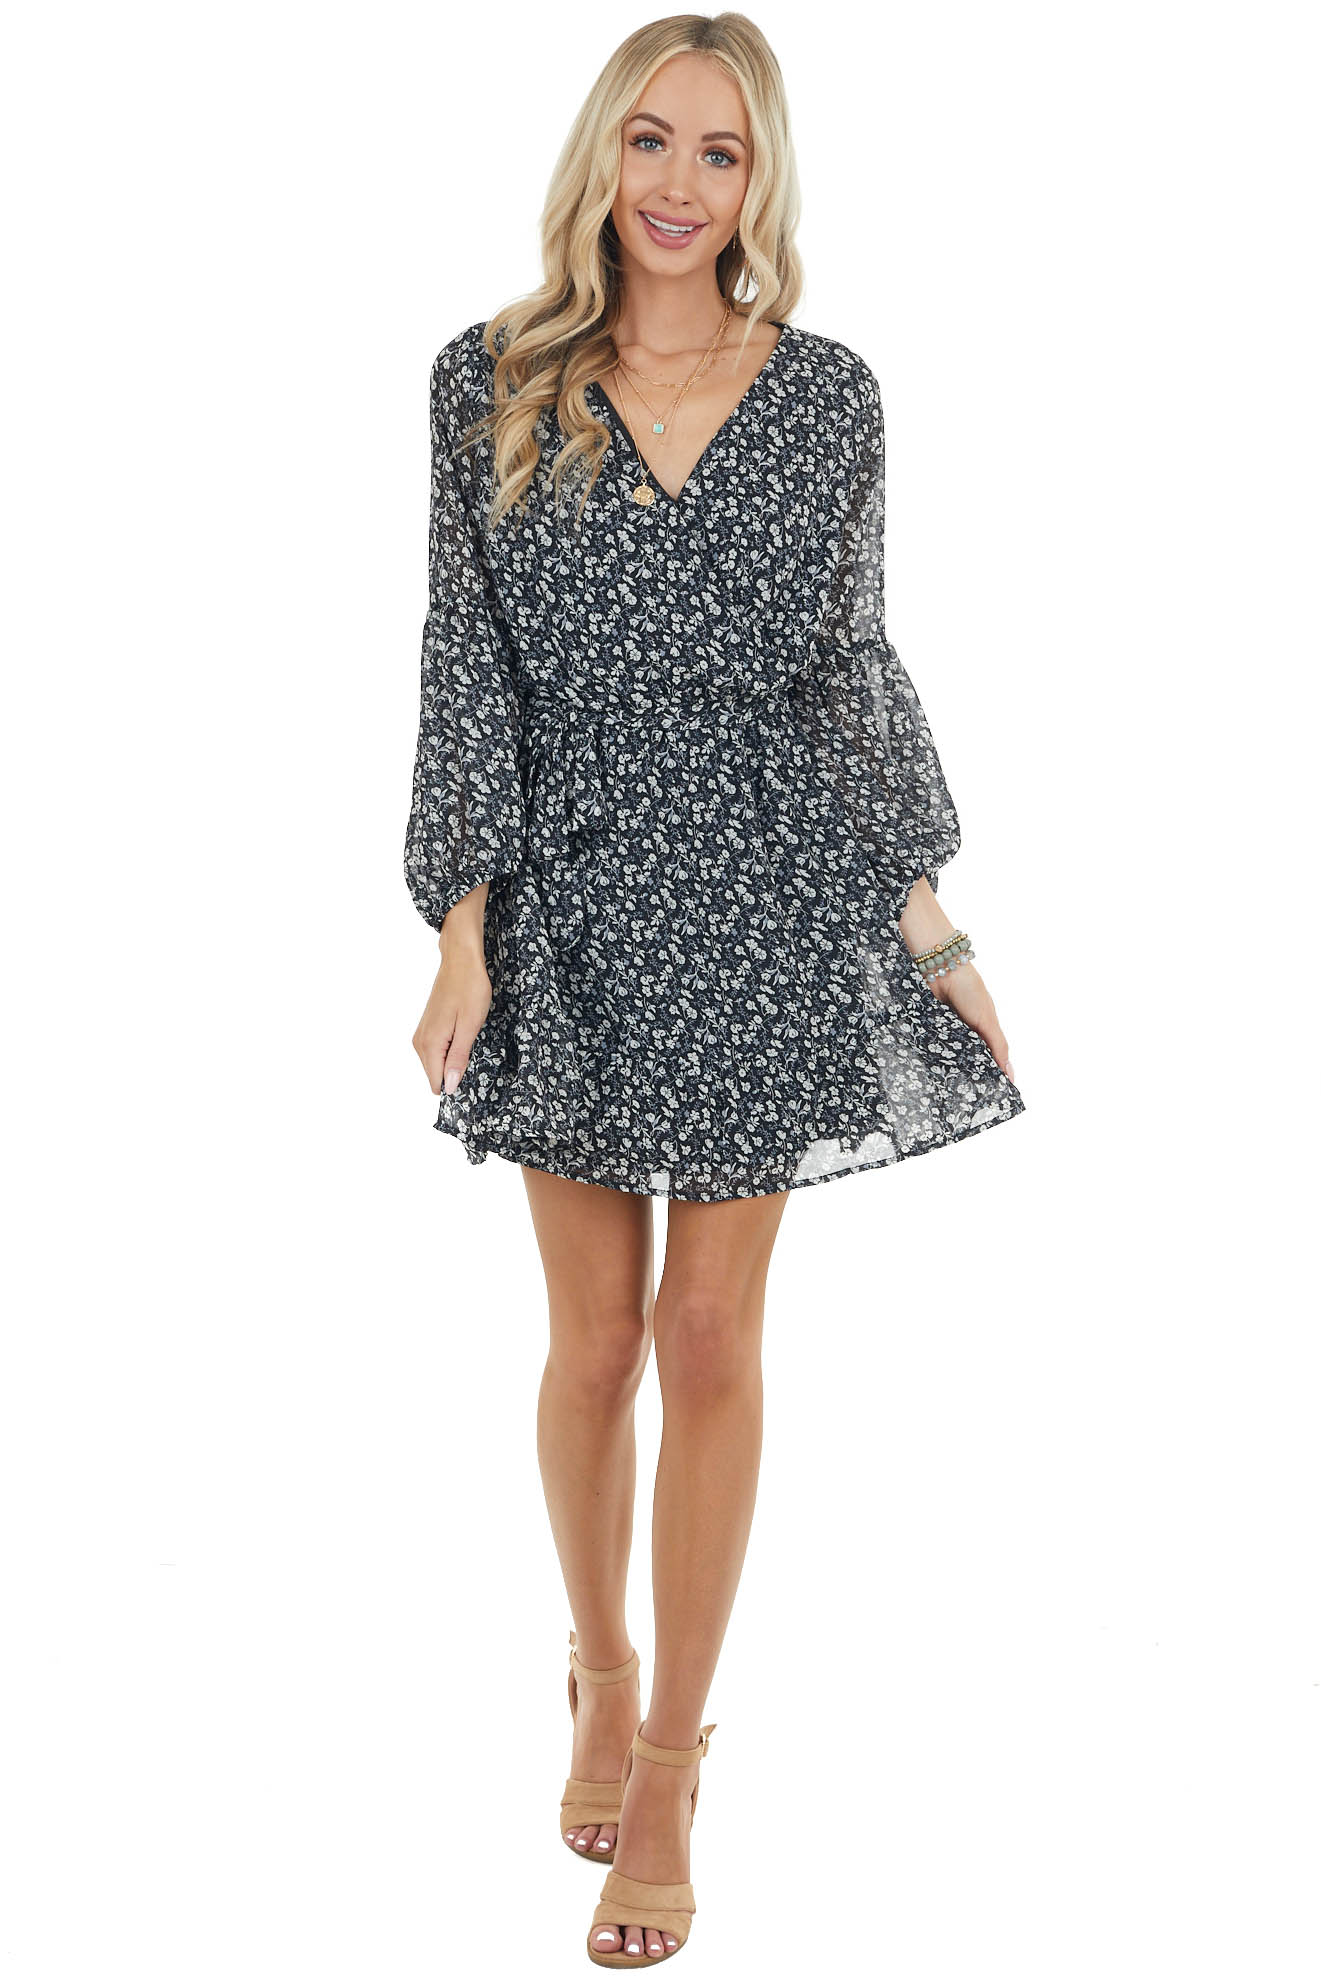 Black Ditsy Floral Print Short Surplice Dress with Front Tie